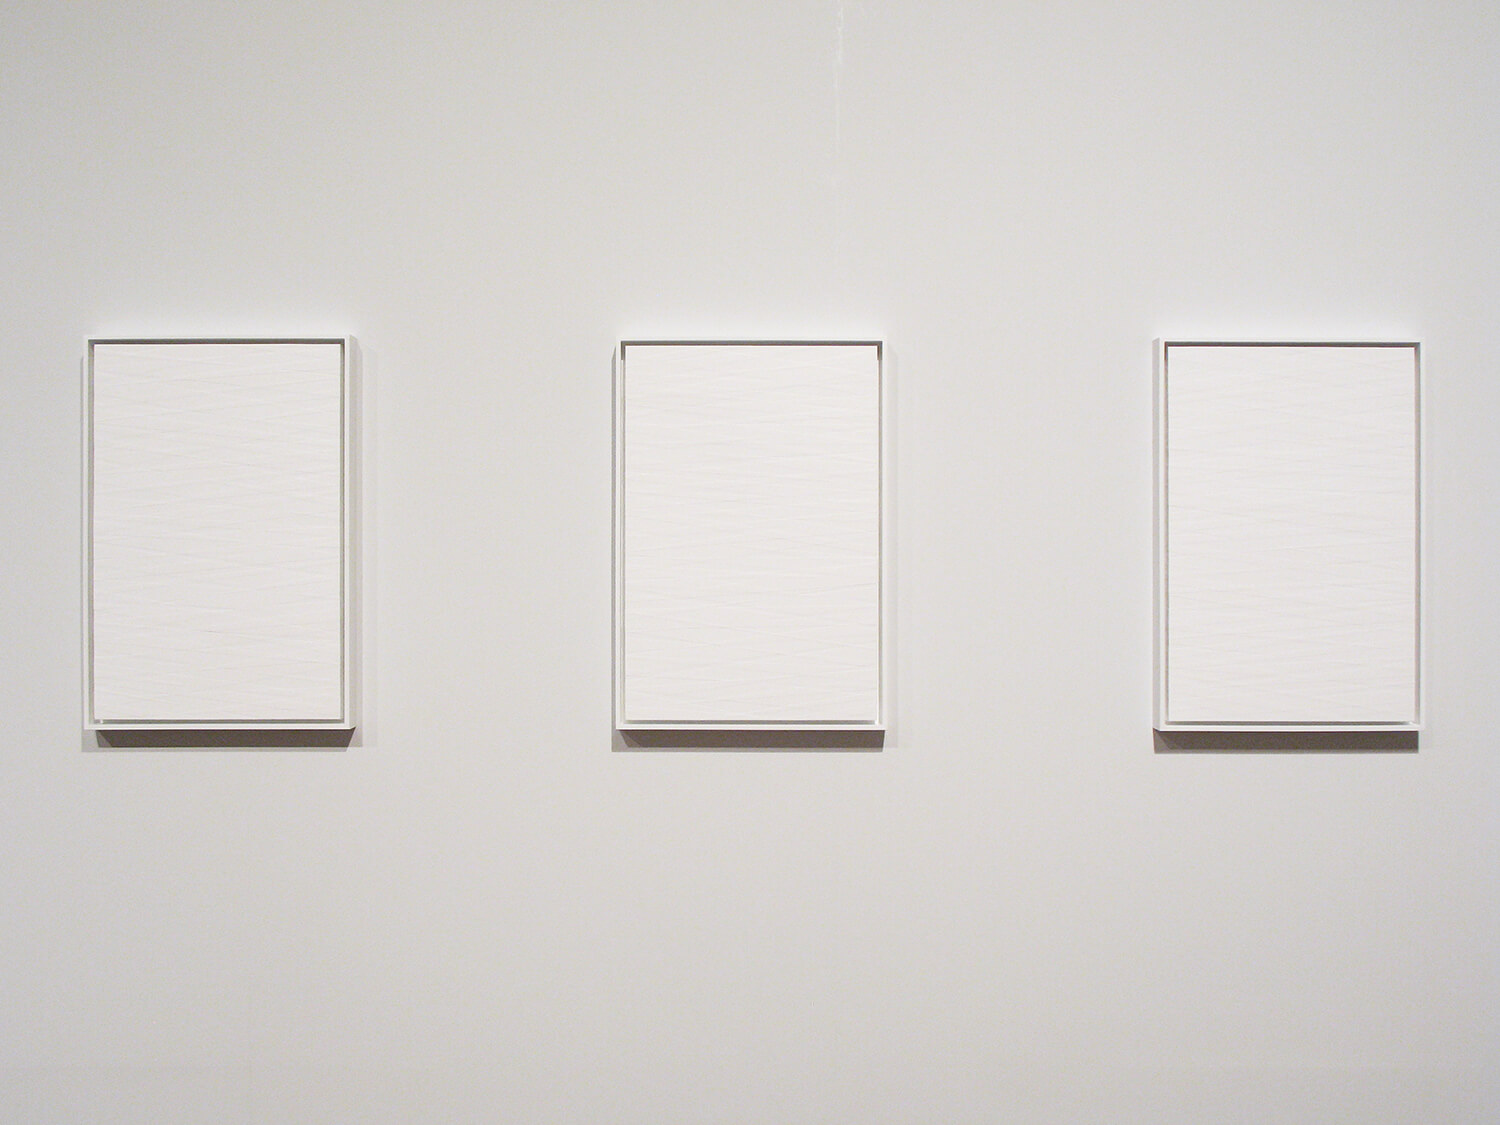 Untitled 2010<br>Acrylic, japanese paper on Board<br>63.5 x 44 x 5.5cm each (set of 22 pieces)